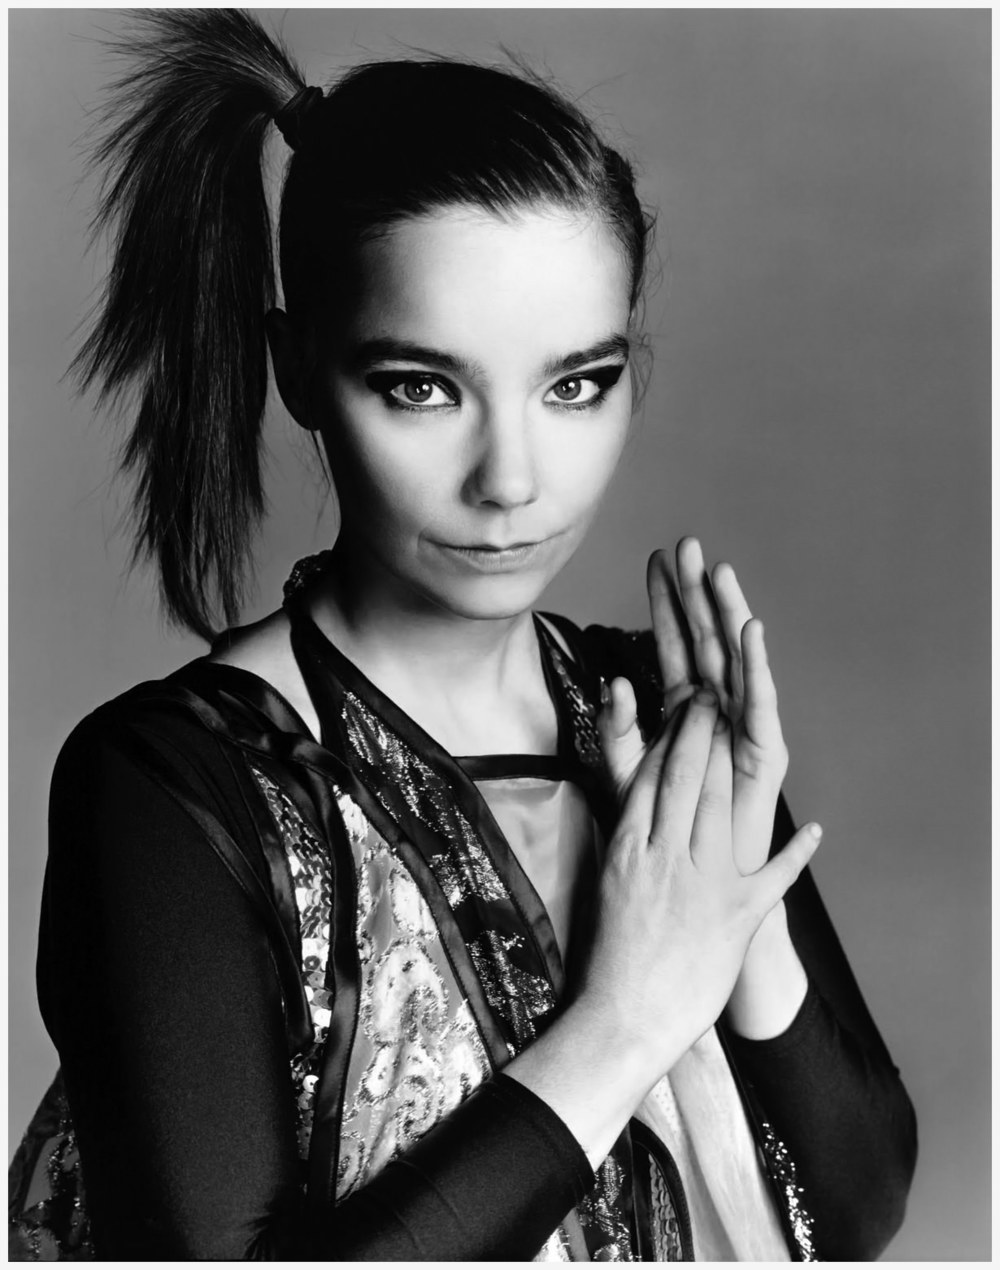 photo-richard-avedon-bjork-juin-2004.jpg